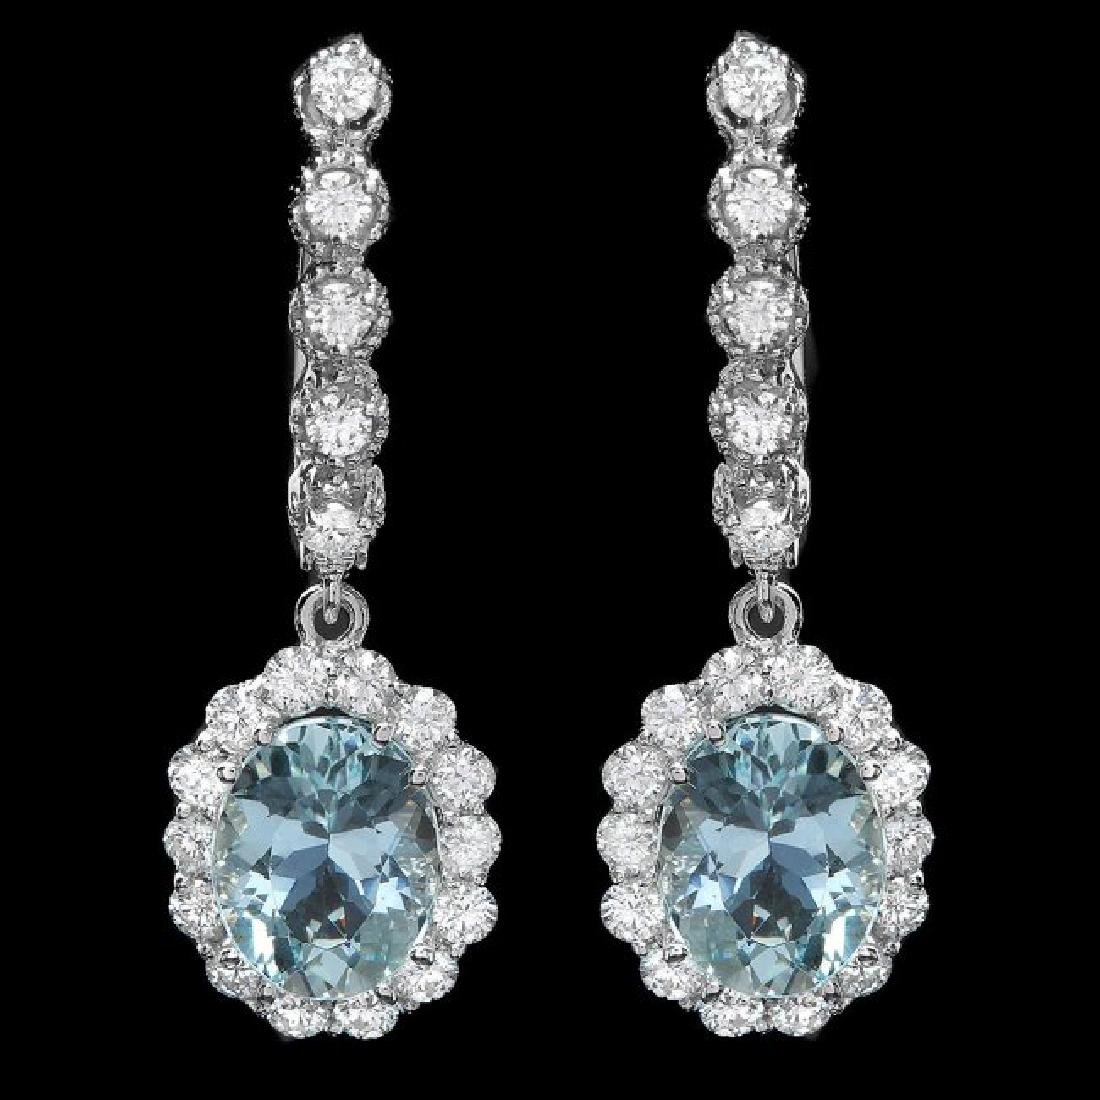 14k Gold 4ct Aquamarine 1.00ct Diamond Earrings